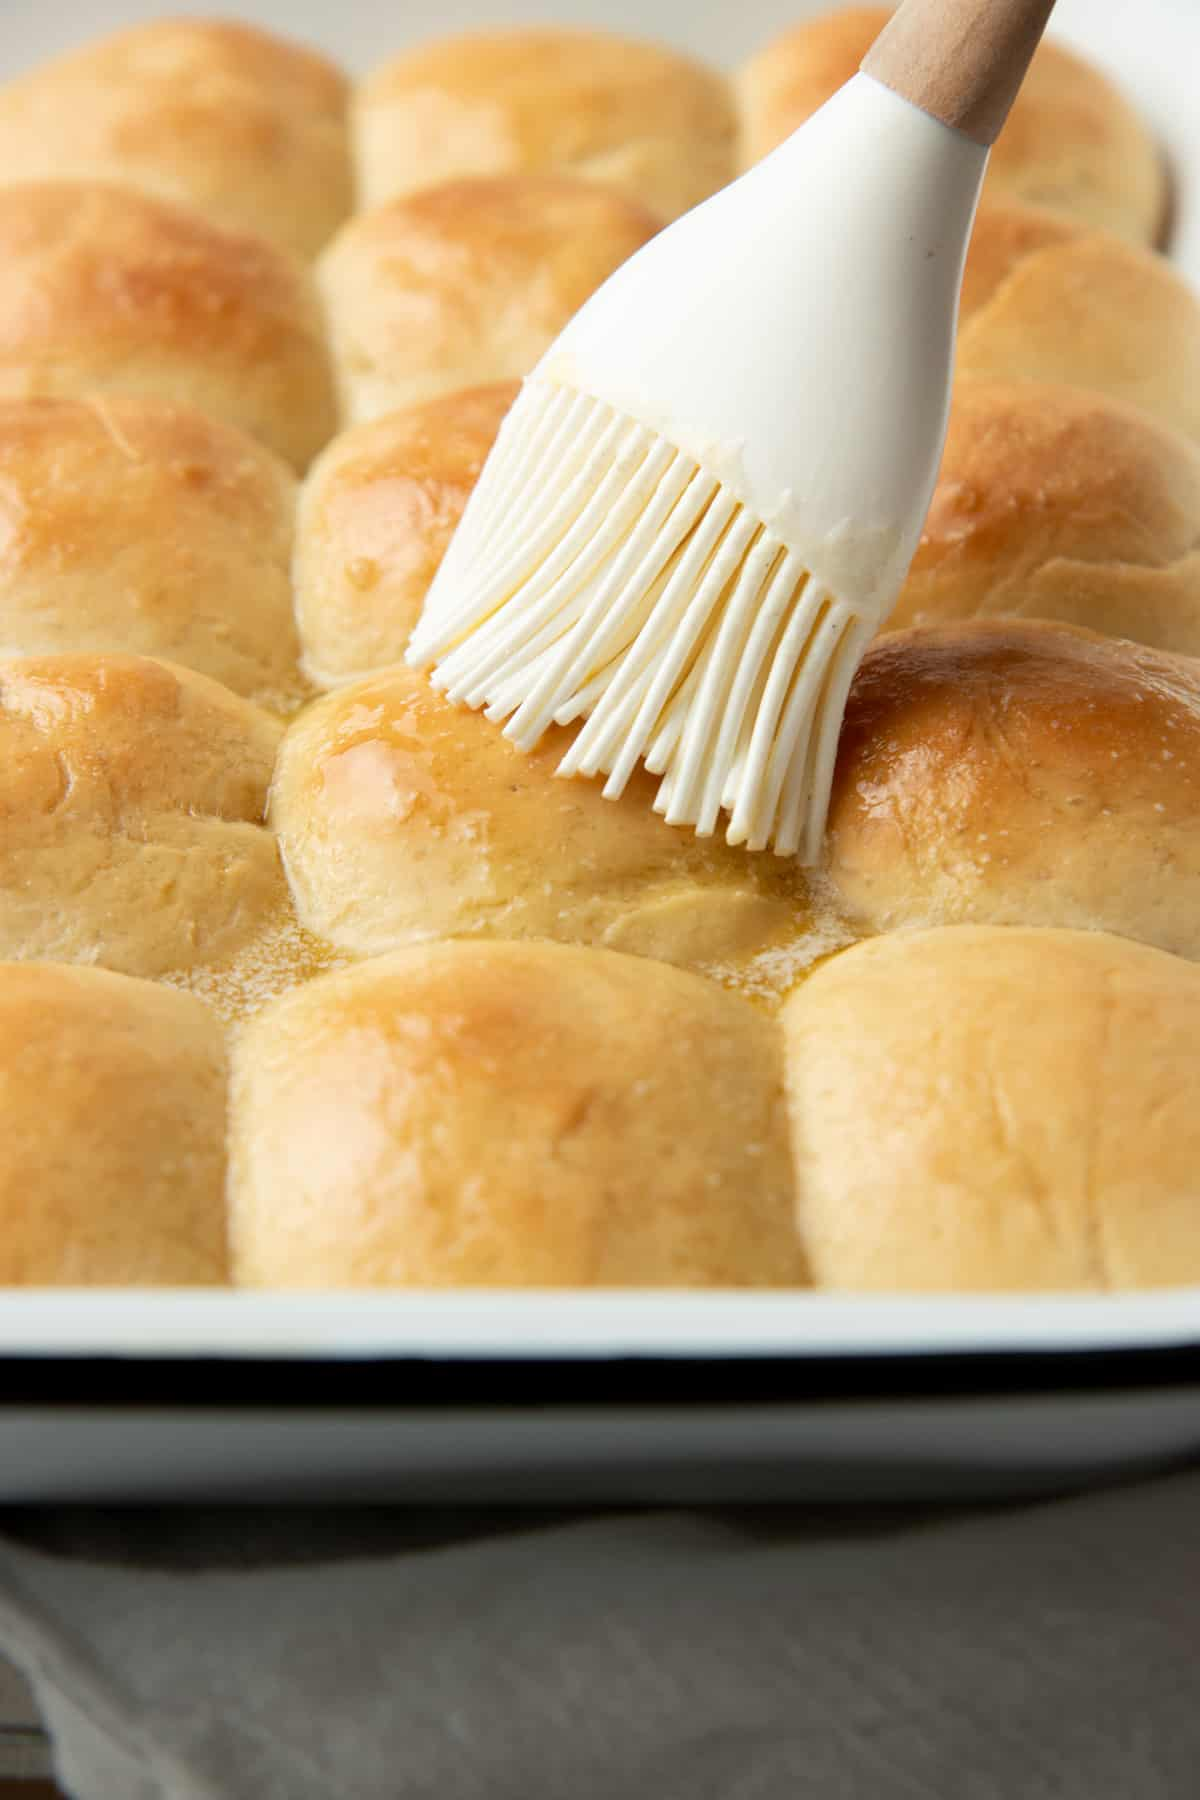 A brush brushes butter on a pan of freshly baked rolls.